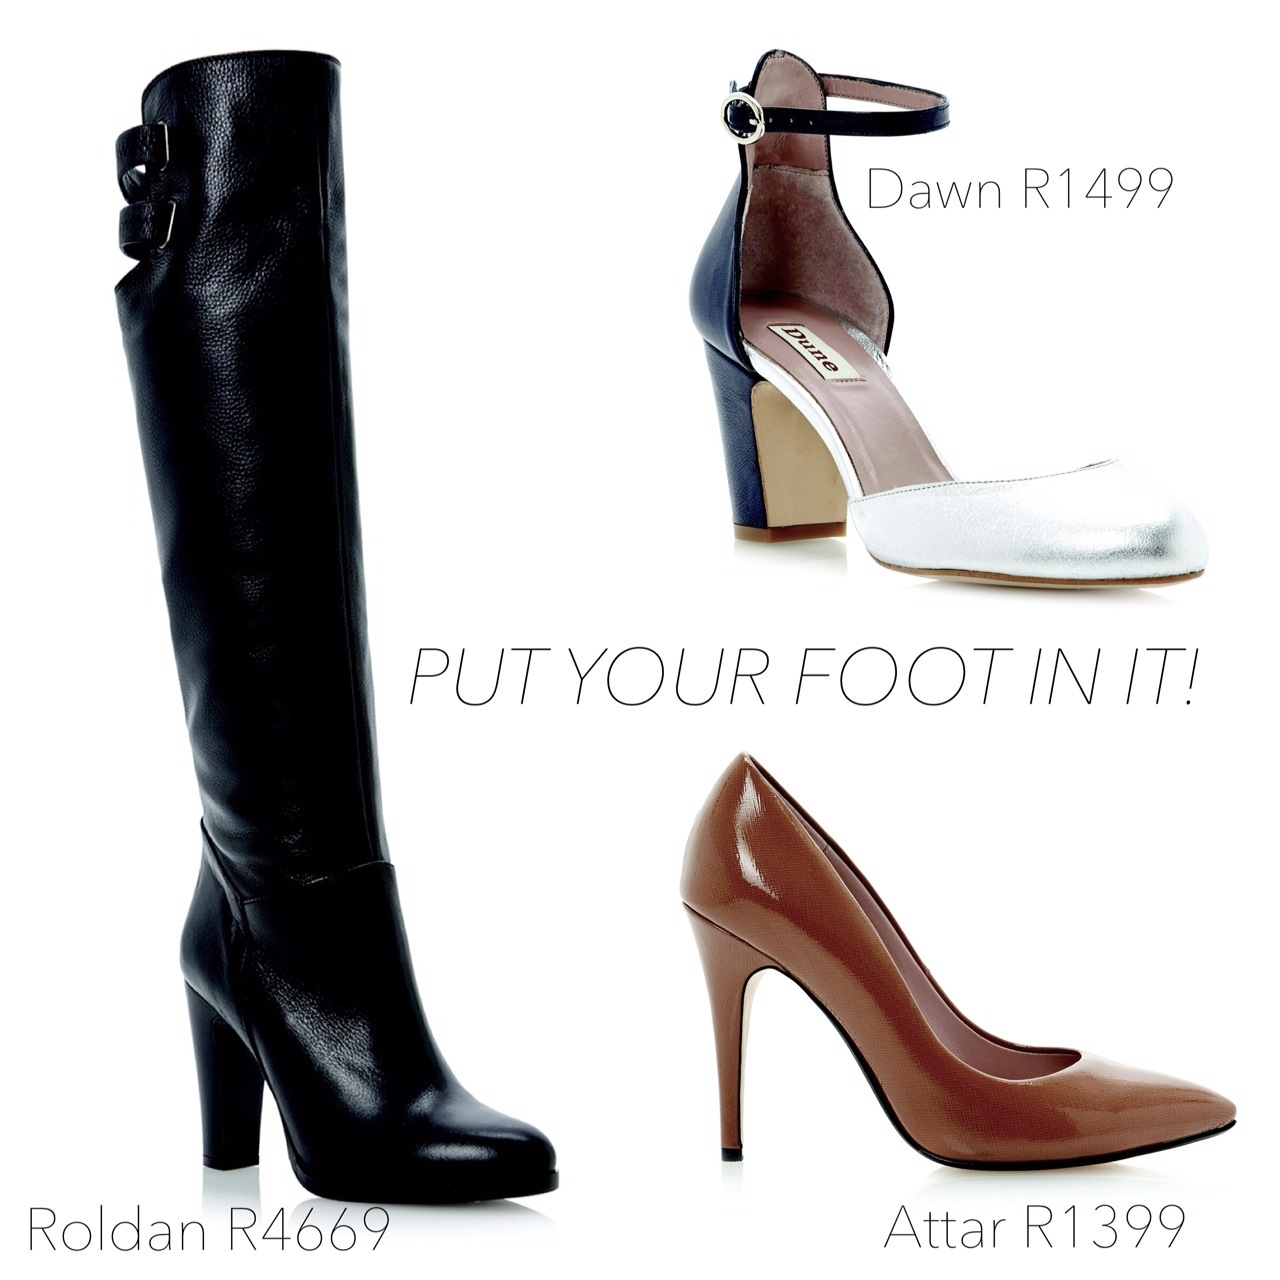 Edgars Shoes And Boots